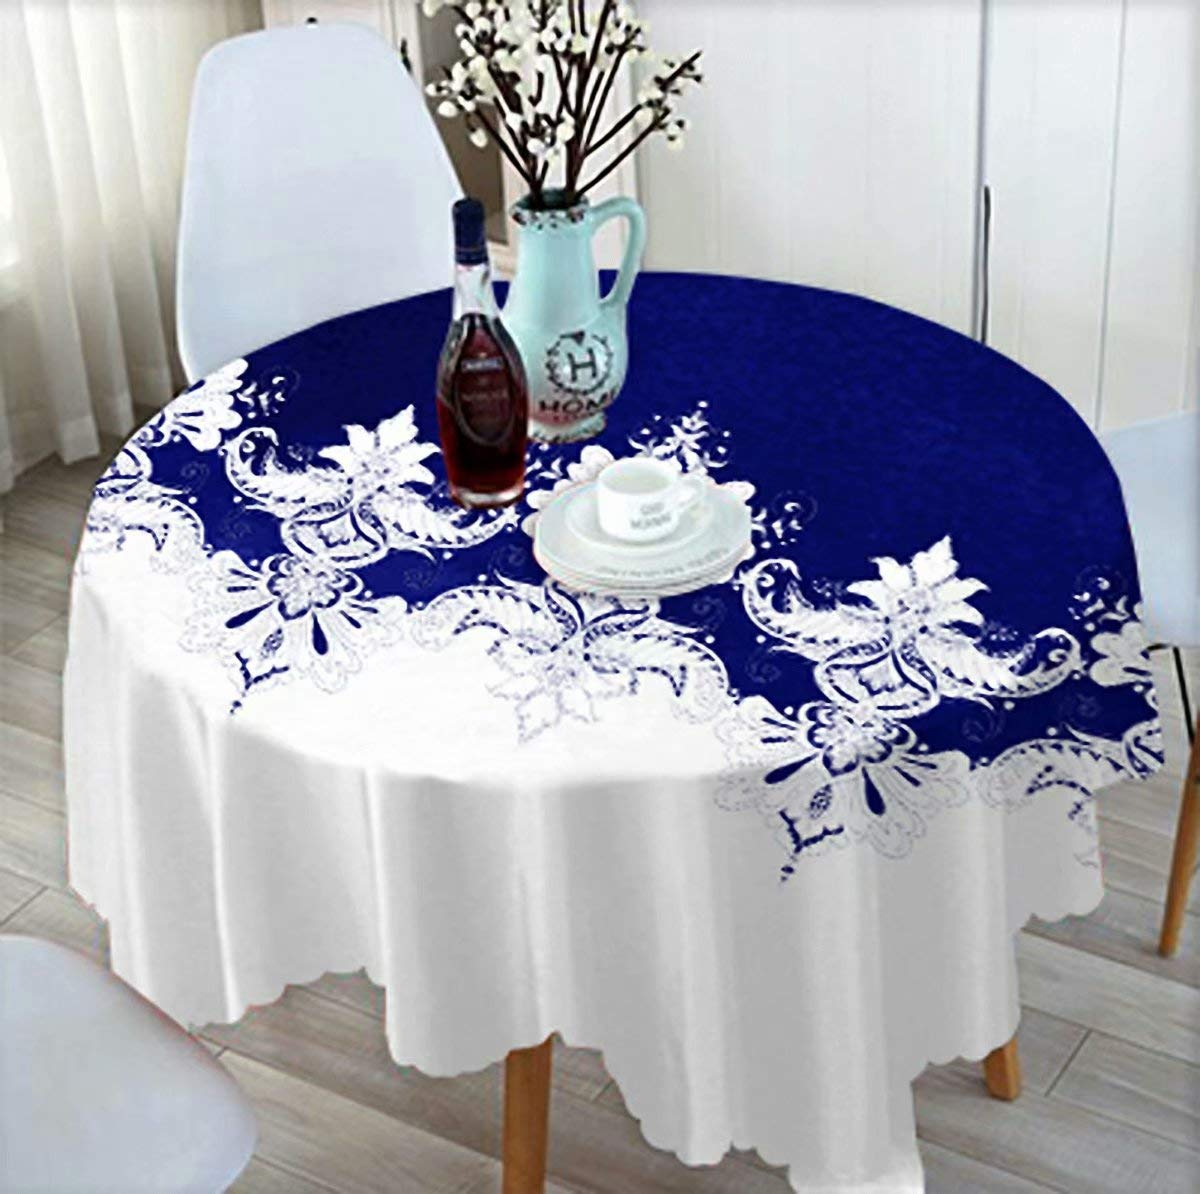 Buy Tablecloth 39 Inch Table Cloth For 4 Foot Table In Washable Polyester Great For Buffet Table Parties Dinner Wedding More Navy Blue White Iris Flower Online At